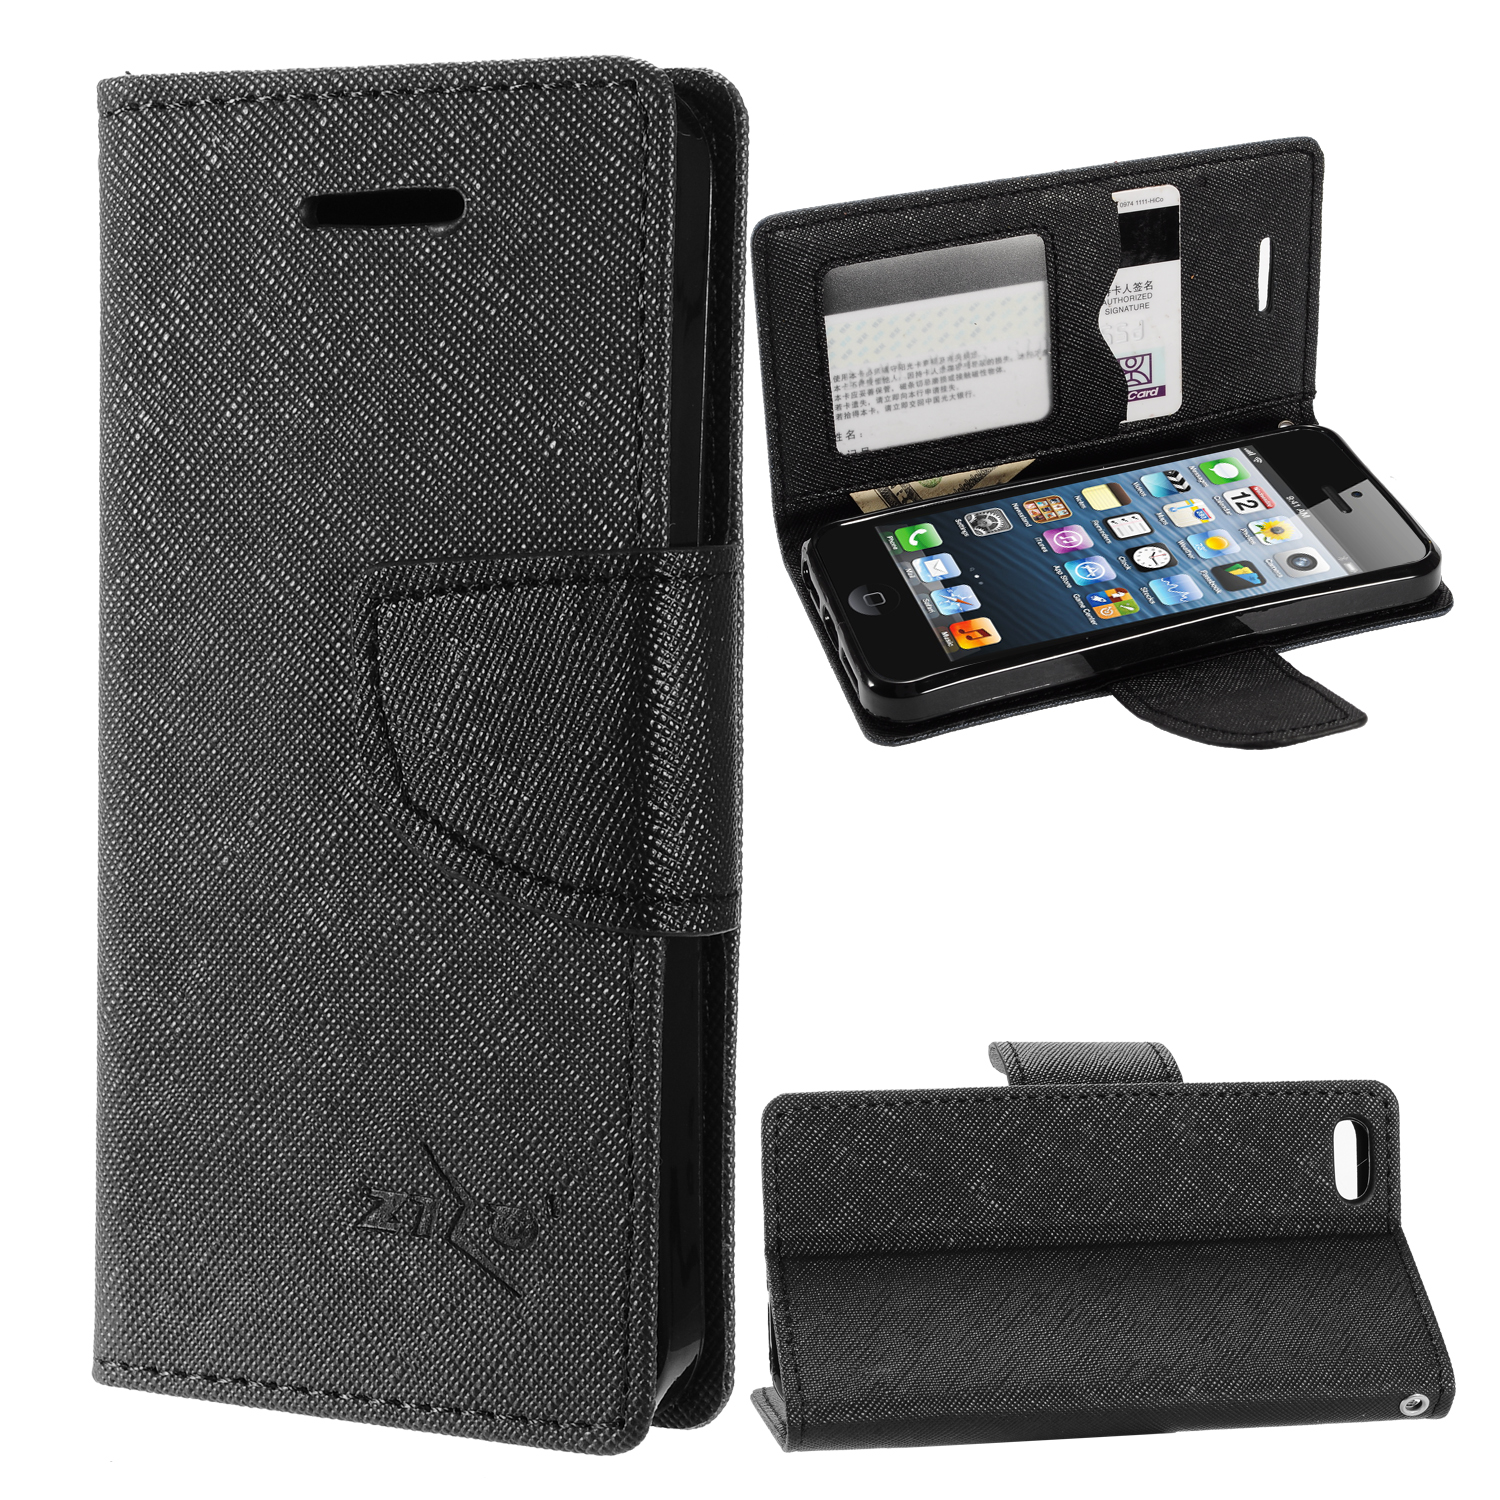 zizo wallet case for iphone se 5 5g 5s wallet pouch w tpu inside cover ids card holder kickstand